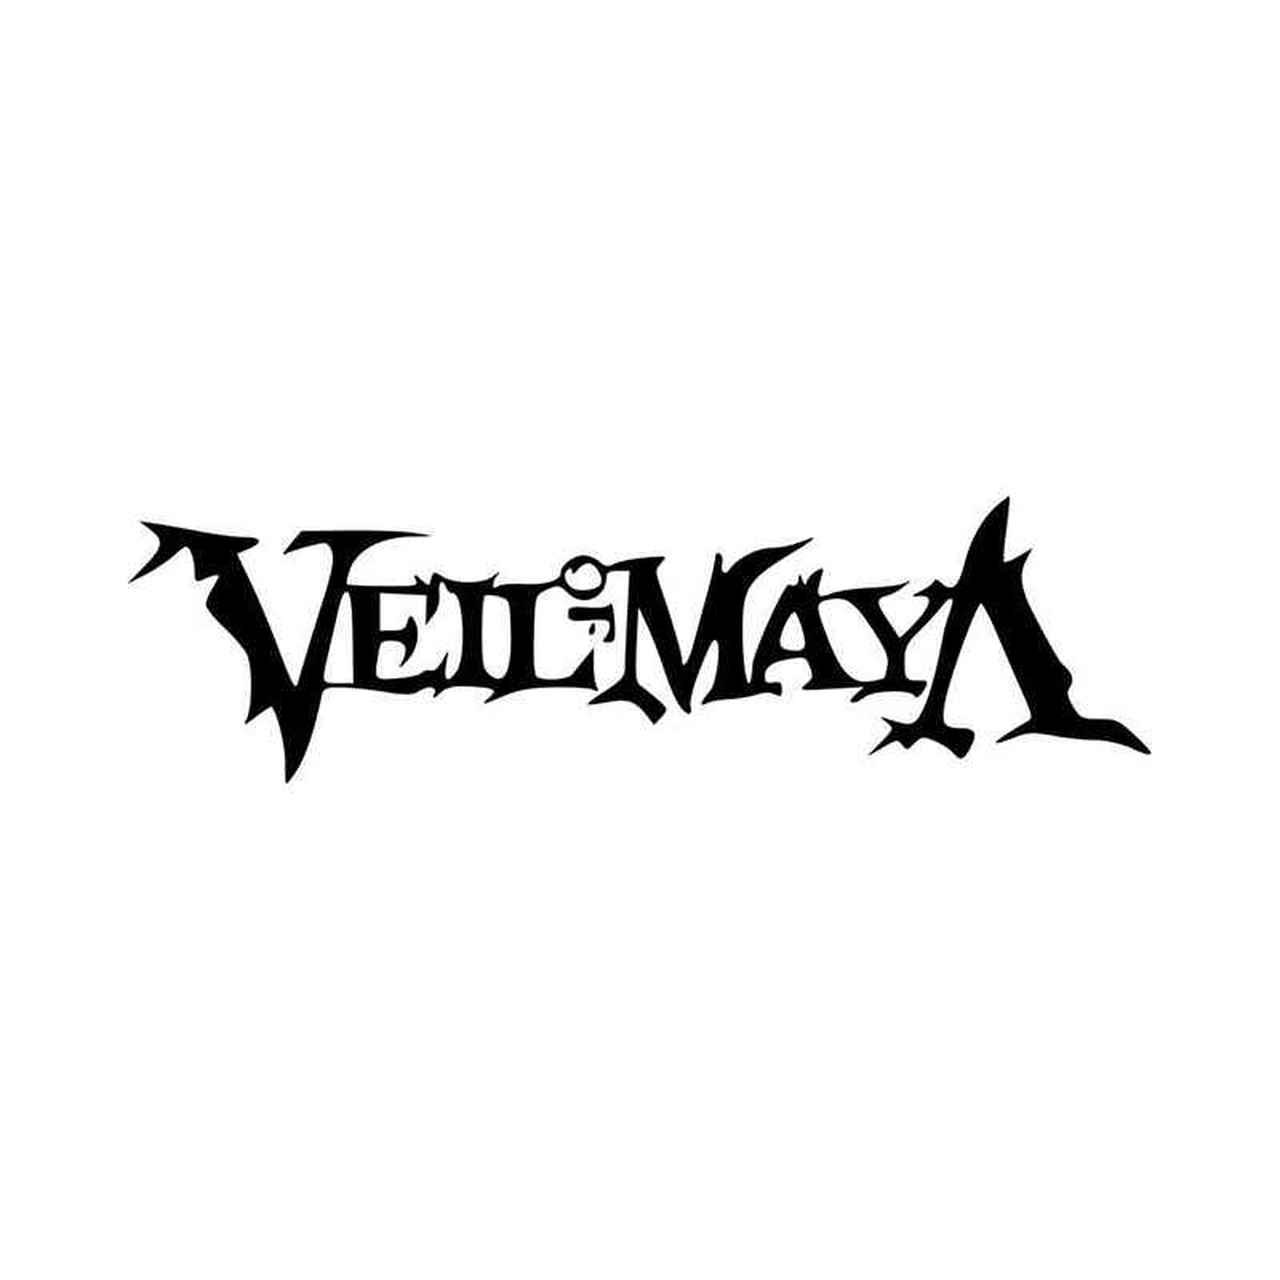 Veil Of Maya Band Logo Vinyl Decal Sticker.